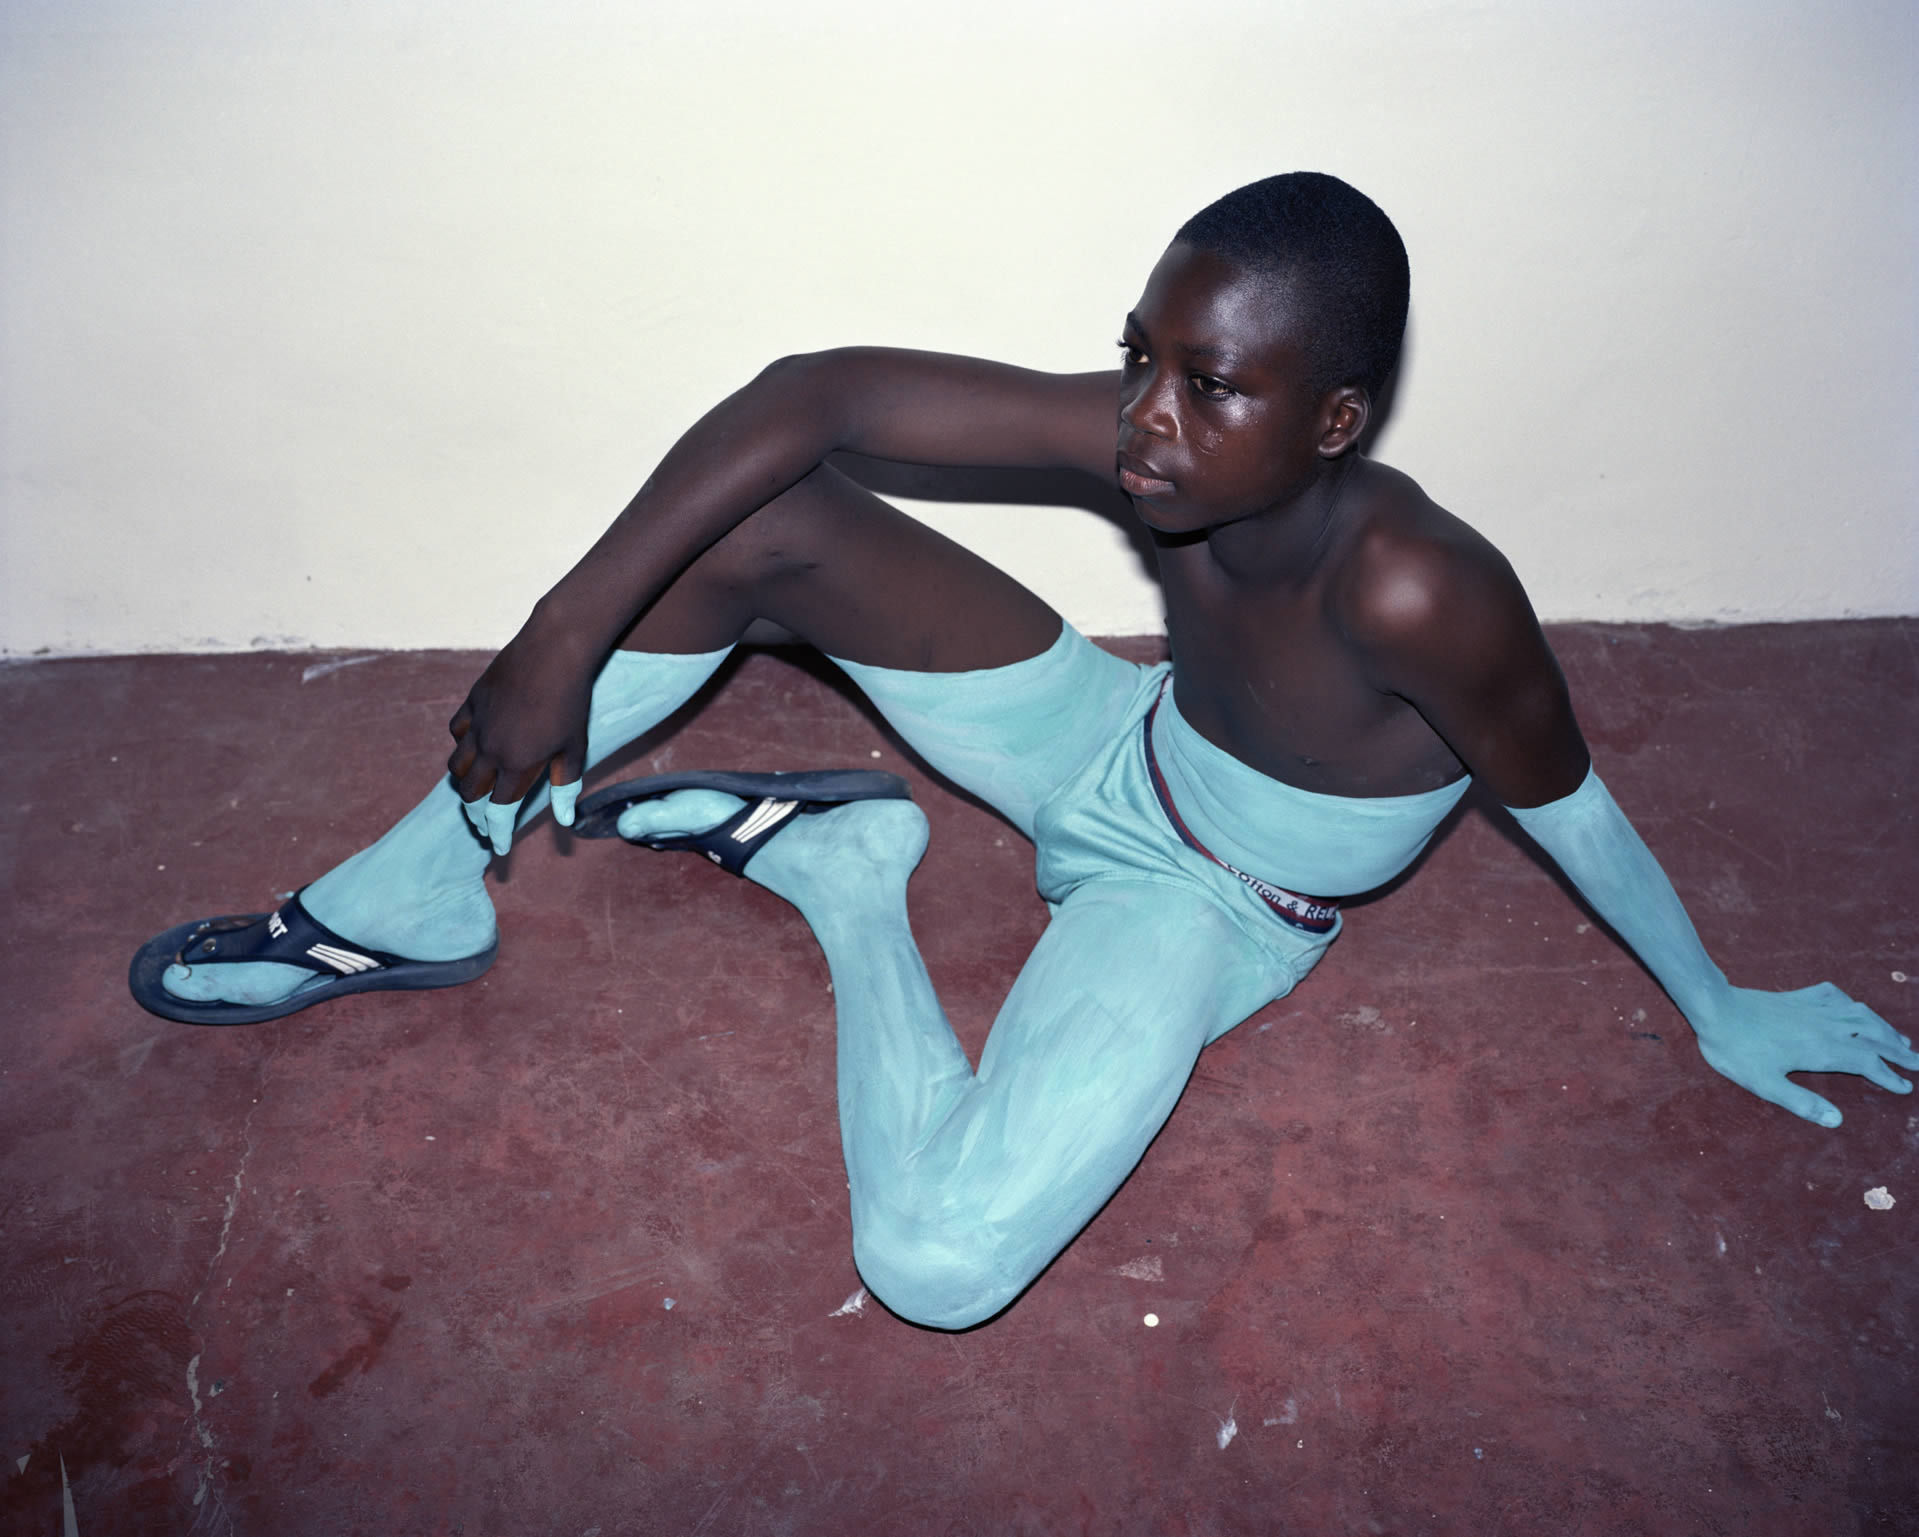 Viviane Sassen's Stylish Photos and Connection to Africa